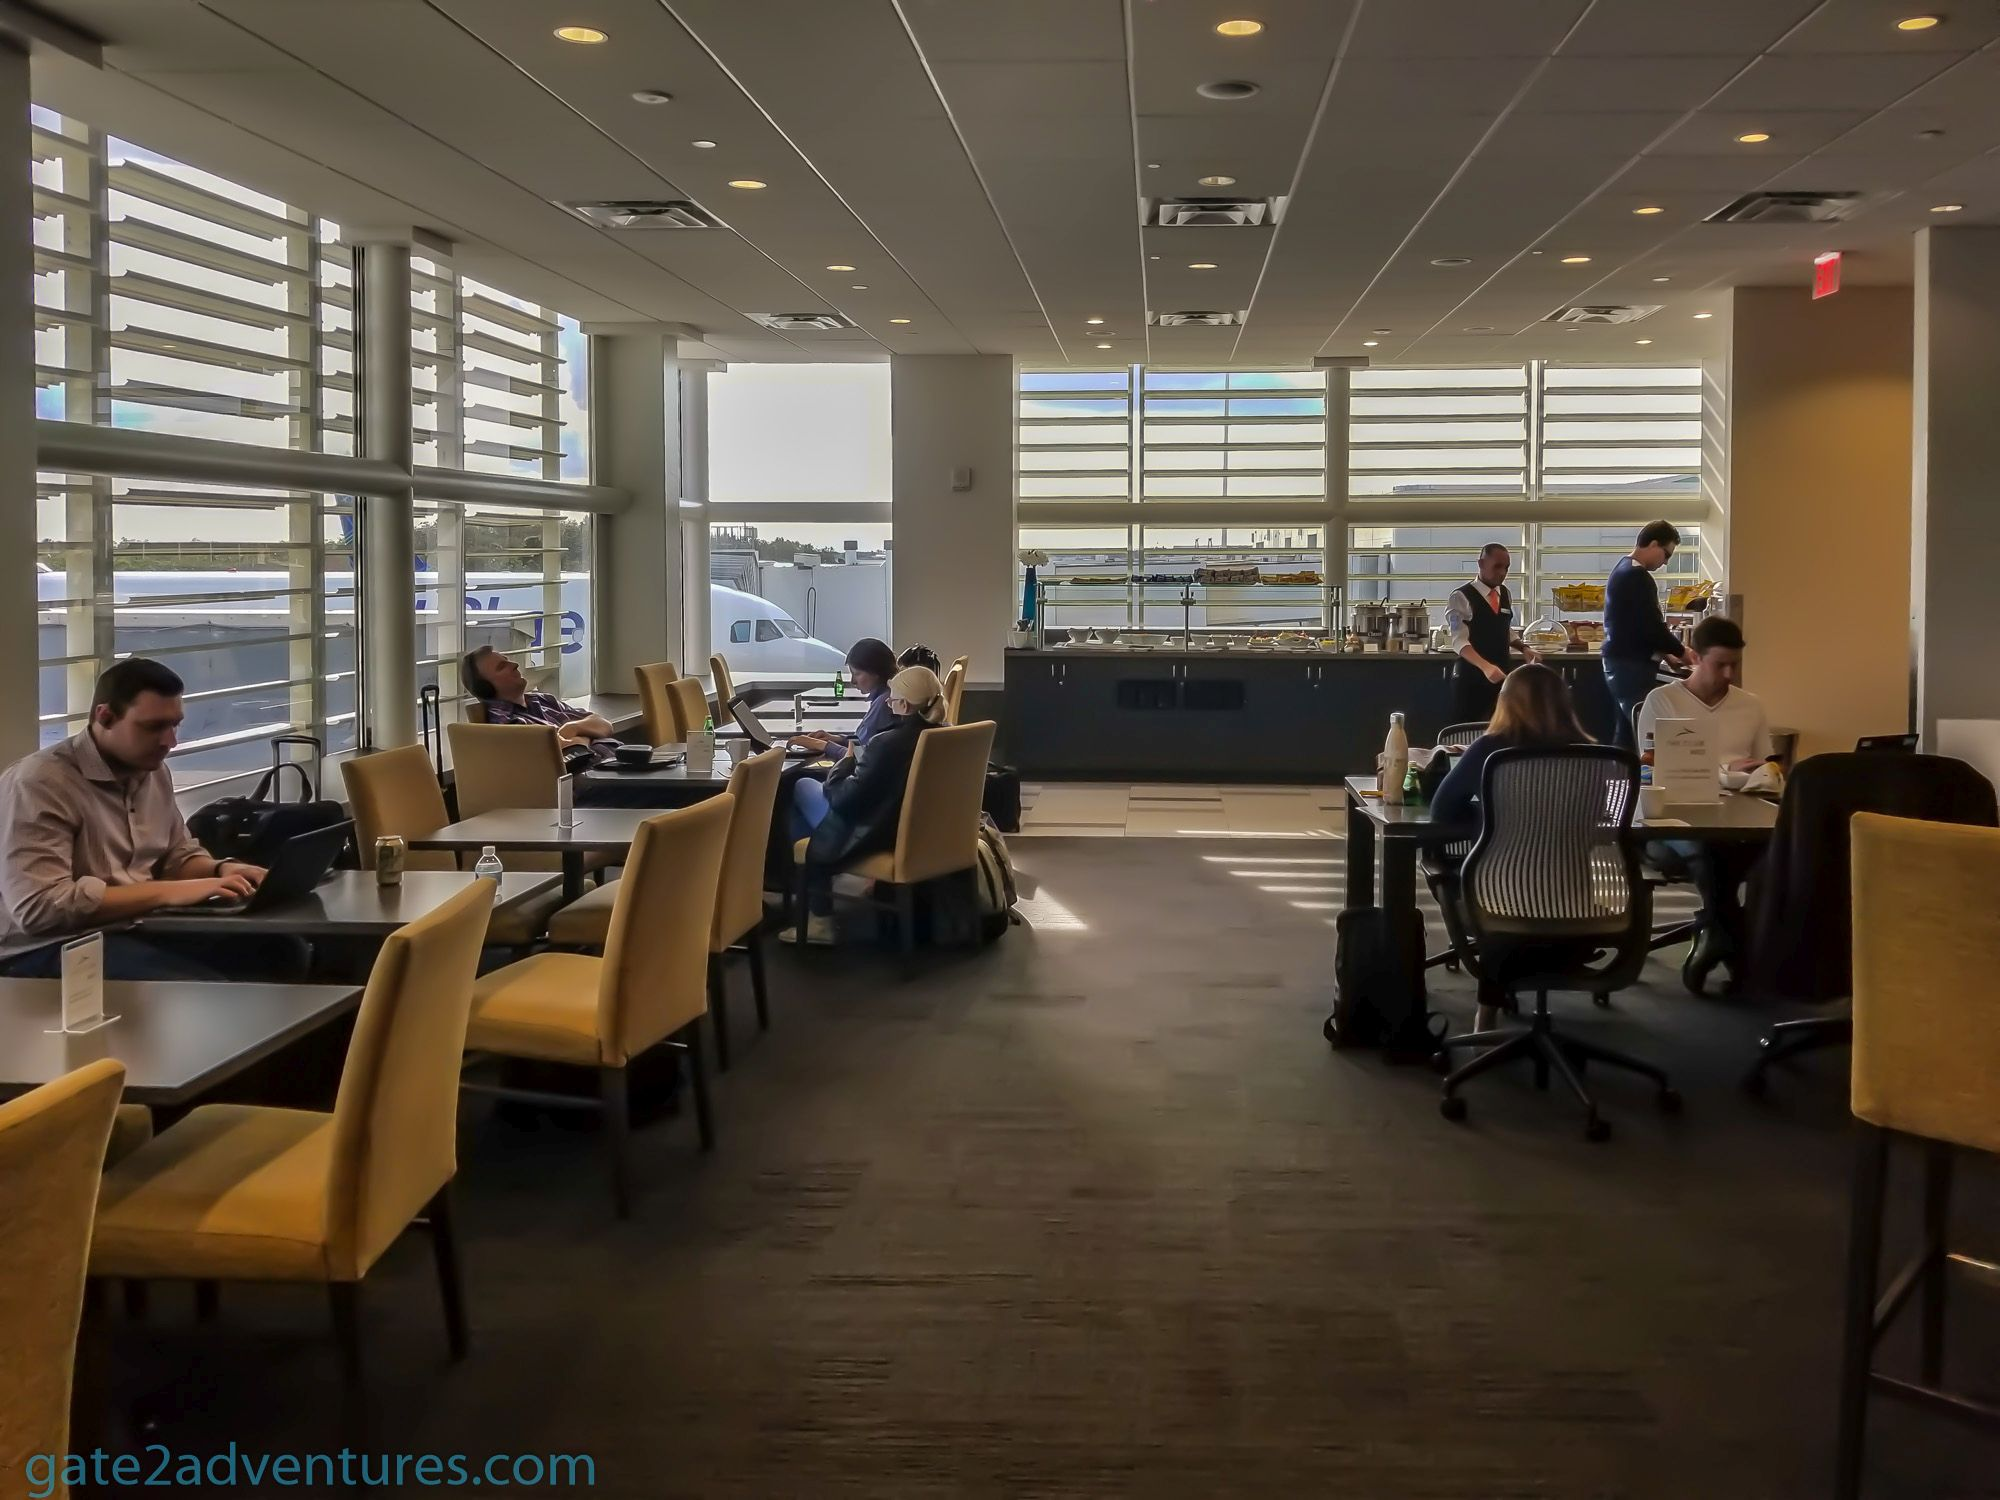 Lounge Review: The Club Orlando International Airport (MCO) Terminal B